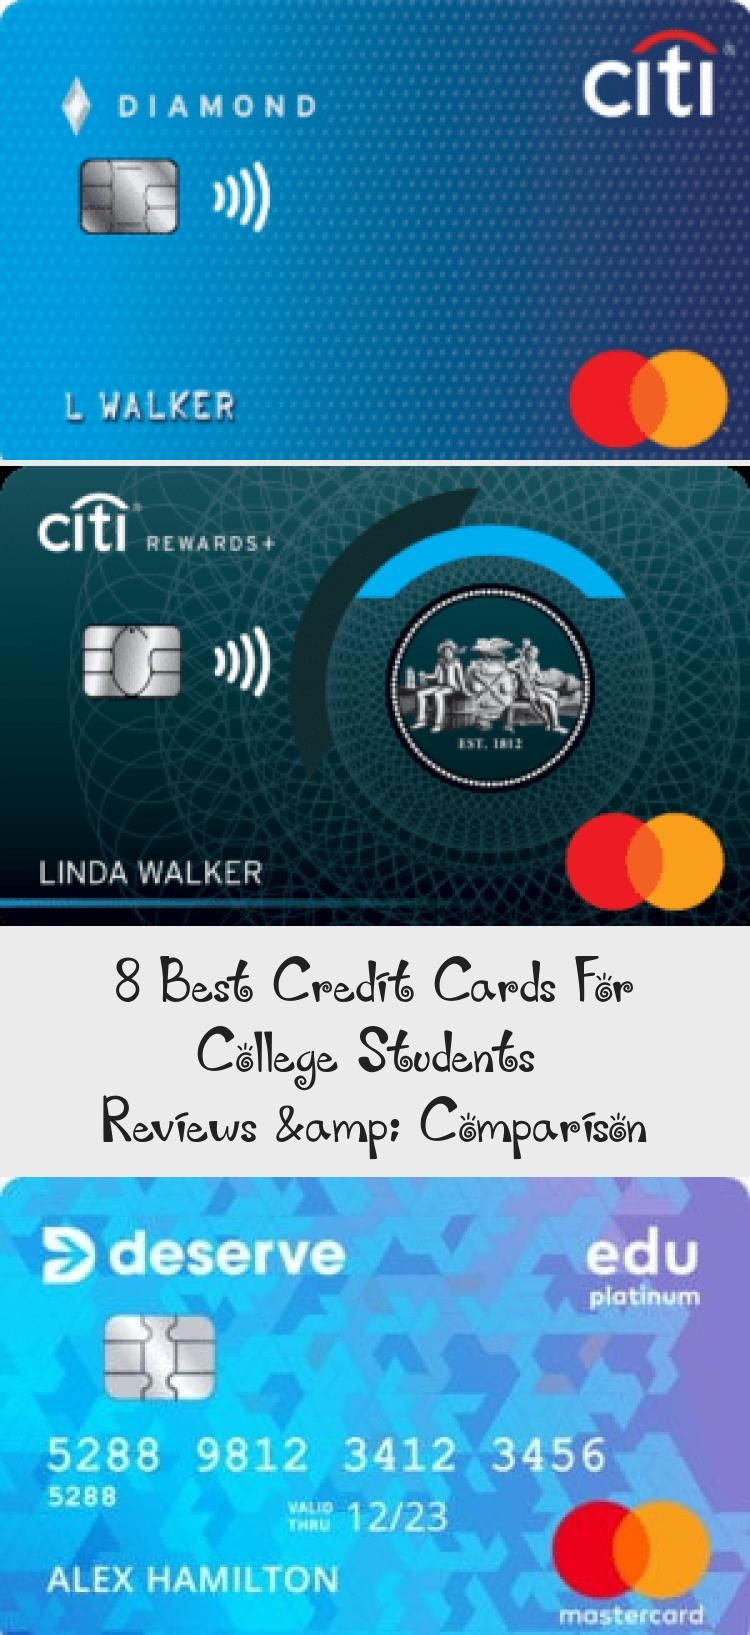 8 best credit cards for college students reviews